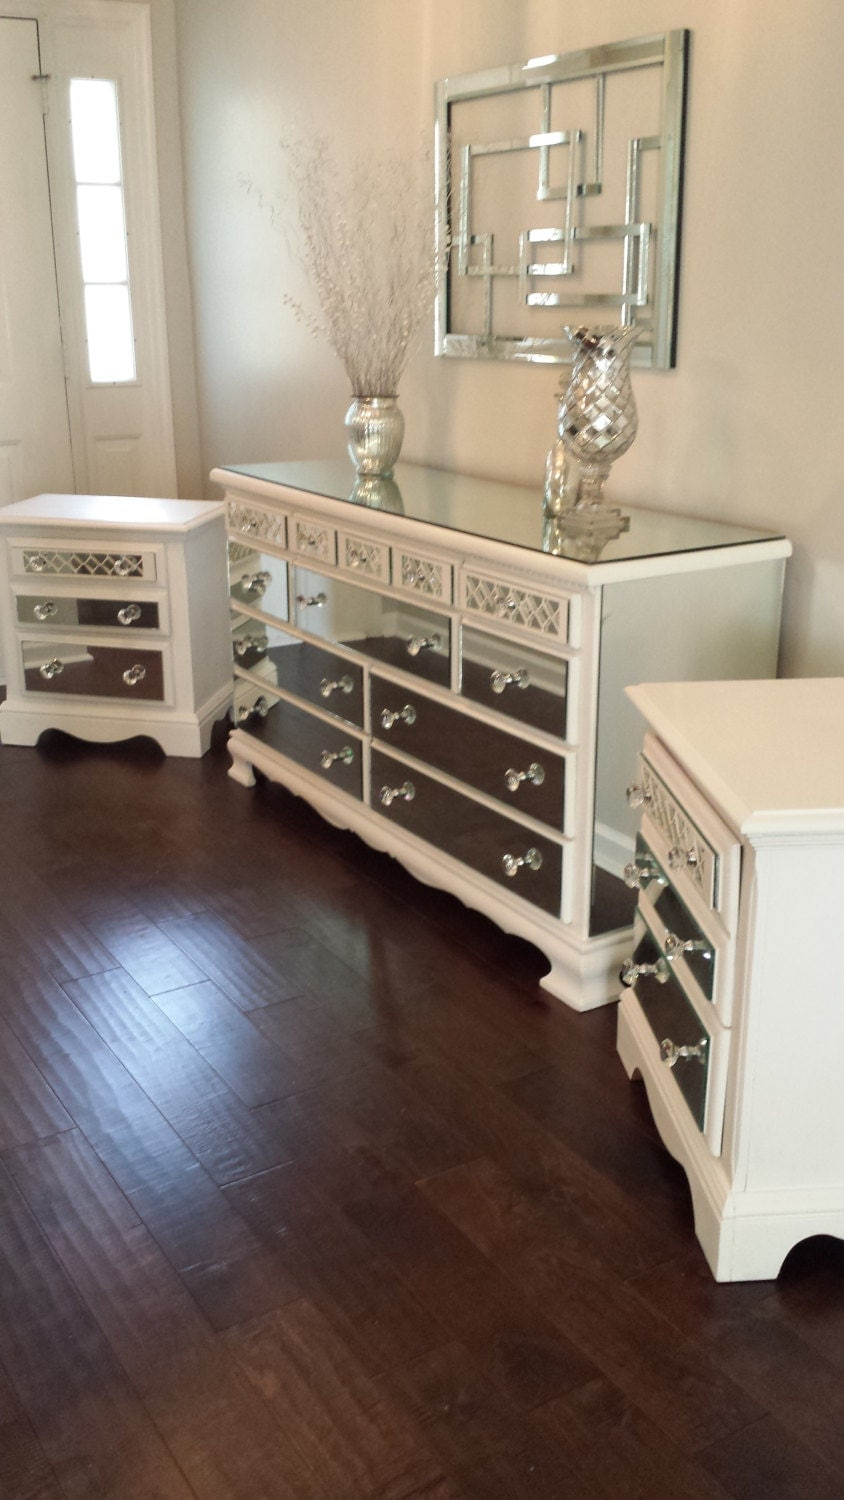 These 6 Pieces Of Colorful Furniture Are Absolute Must Haves: Mirrored Dresser And 2 Matching Nightstands Pure White With